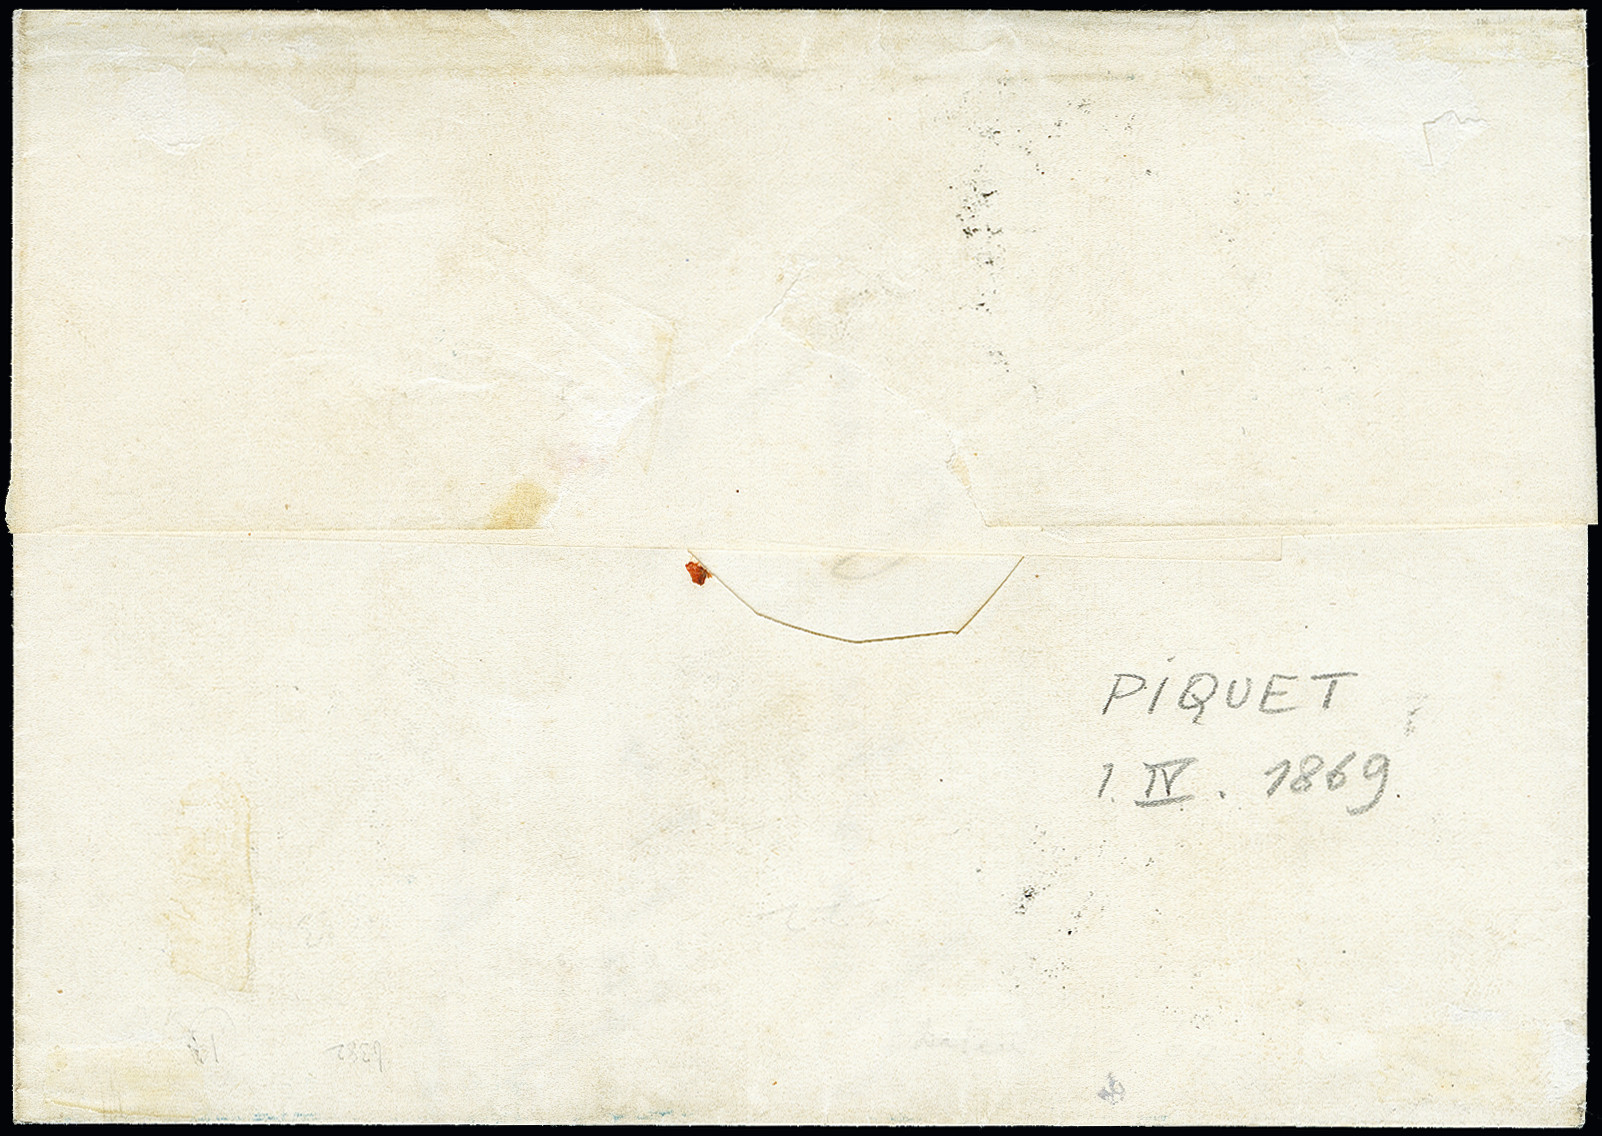 Lot 6173 - Austria DDSG, Ship Mail -  Heinrich Koehler Auktionen 373rd Heinrich Köhler auction - Day 1